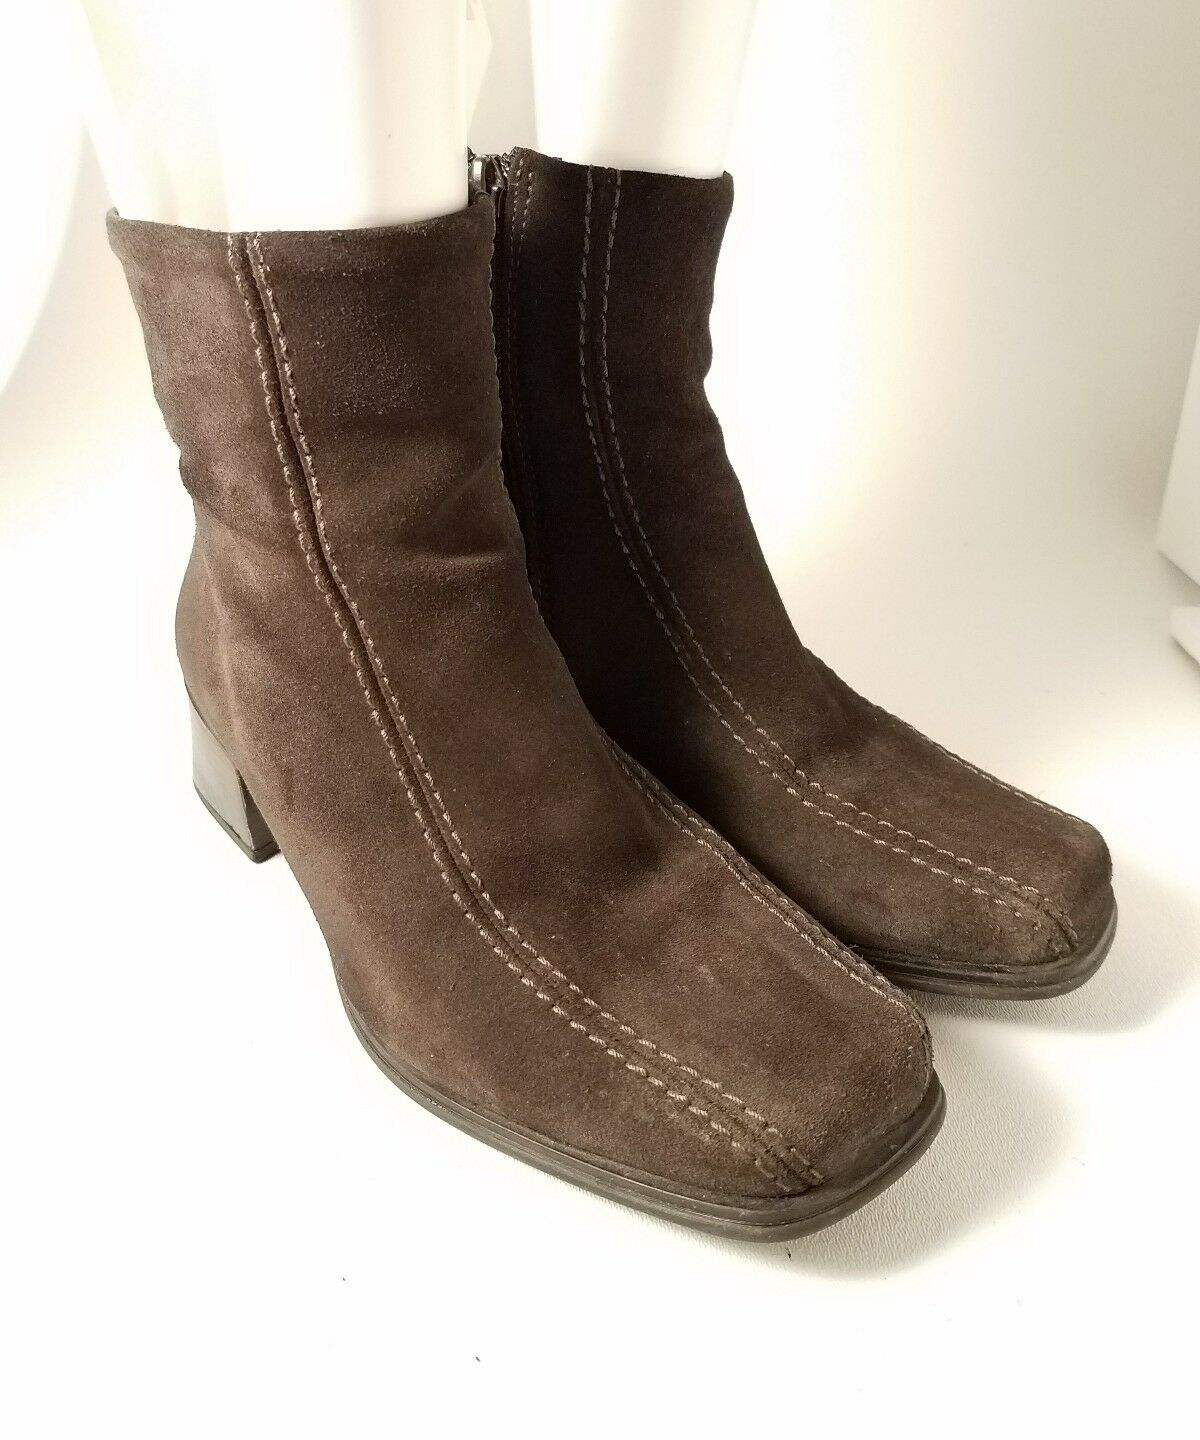 La Canadienne Woman's Chocolate Brown Suede Side Zip Ankle Boots Wide Size 6.5 W